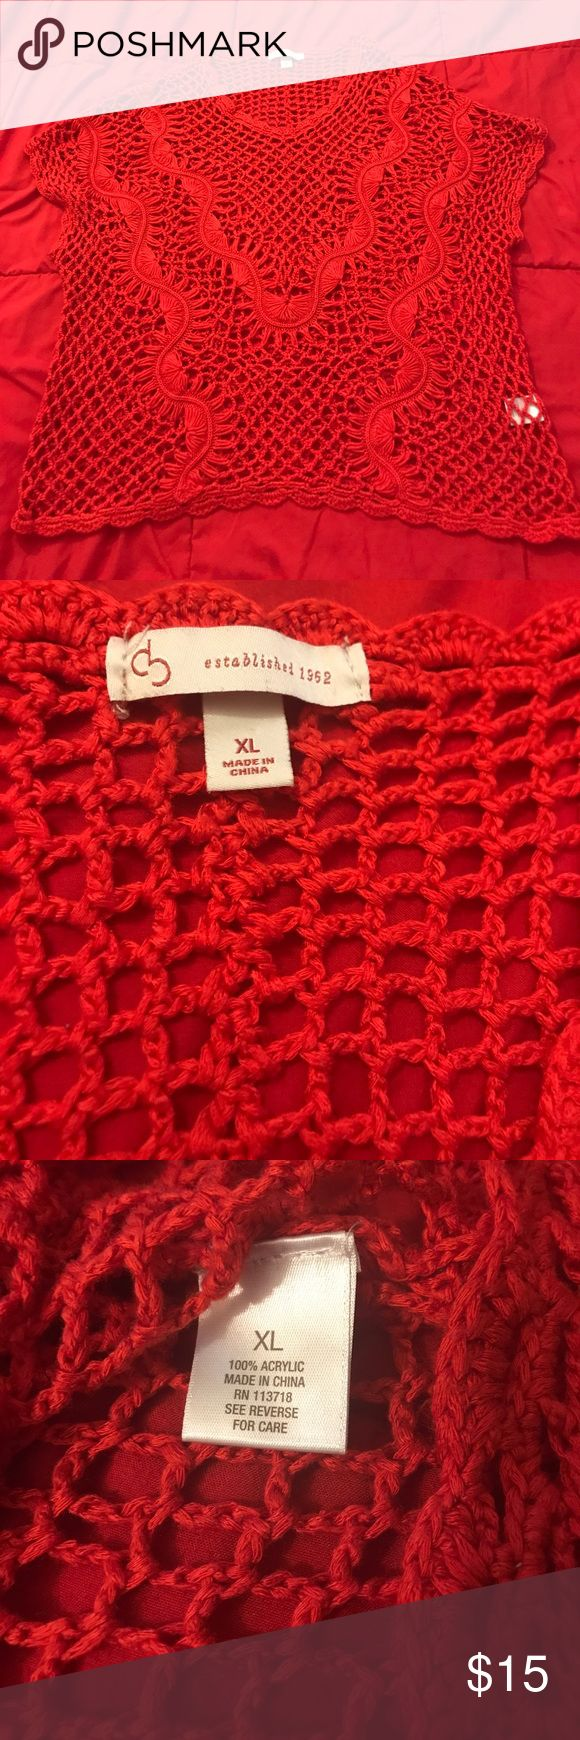 Db red crochet top Dress barn red crochet short sleeve top size extra large. Made of 100% acrylic. In good condition besides one string ripped. (Shown in picture) Dress Barn Tops Blouses